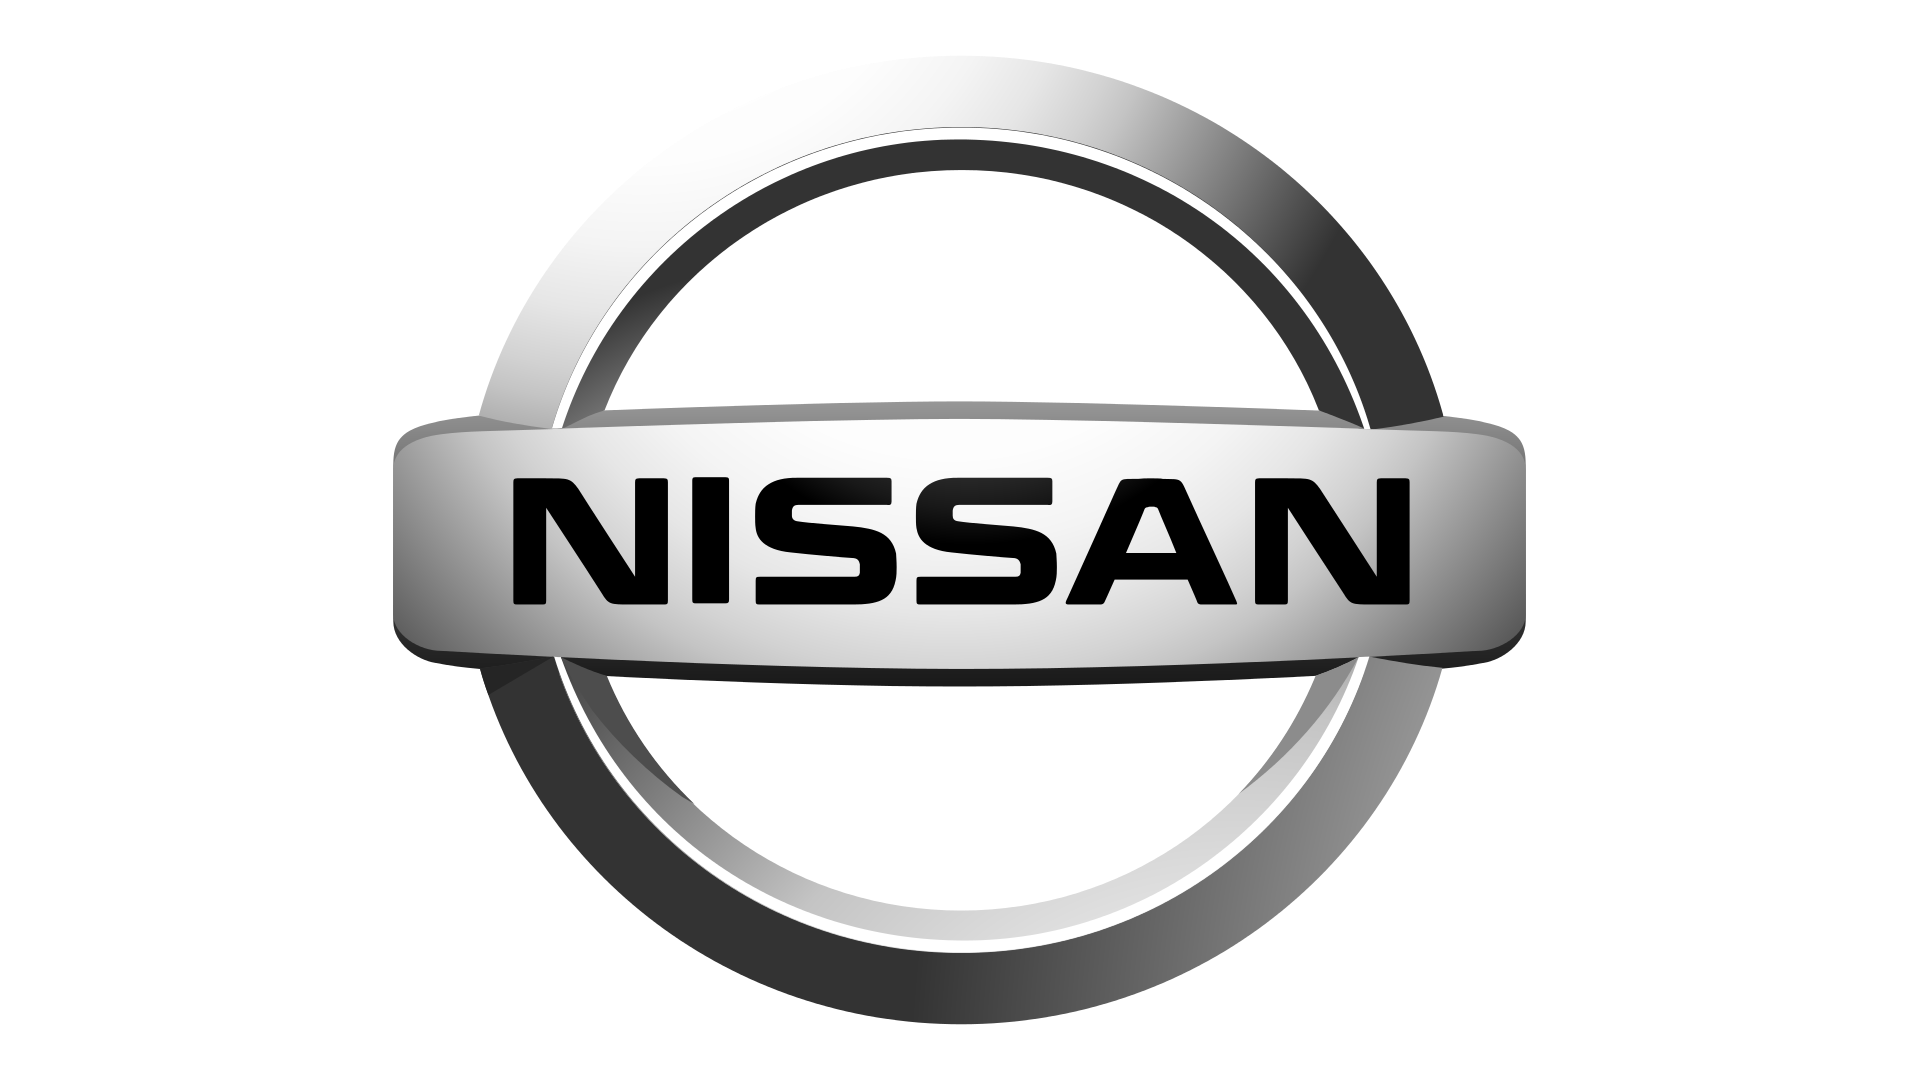 Nissan Logo Hd 1080p Png Meaning Information